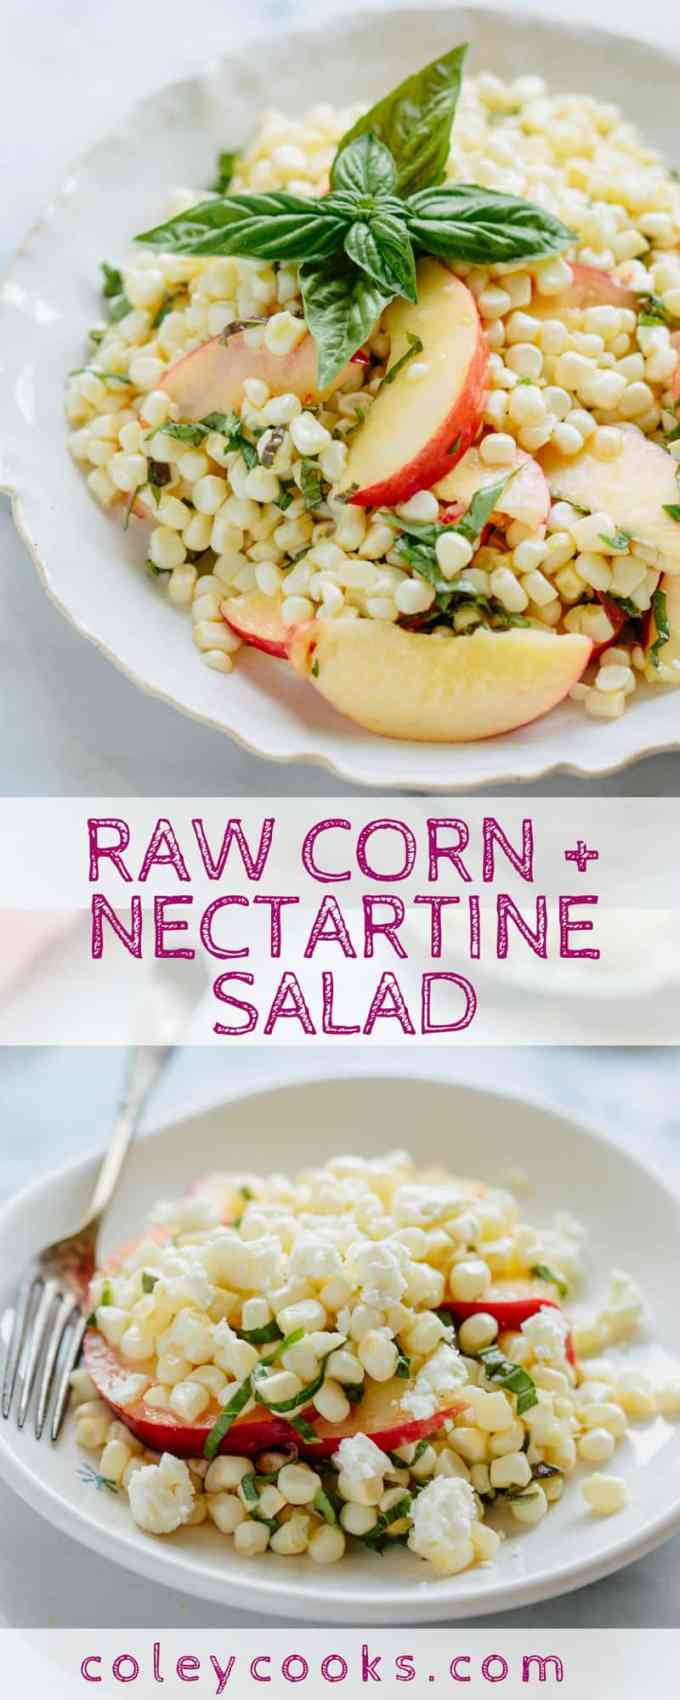 RAW CORN + NECTARINE SALAD. Easy summer salad recipe with beautiful raw sweet corn, juicy ripe nectarines + fresh basil - vegan + gluten free! #easy #glutenfree #planbased #vegan #recipe #summer #salad #corn #nectarines | ColeyCooks.com.jpg